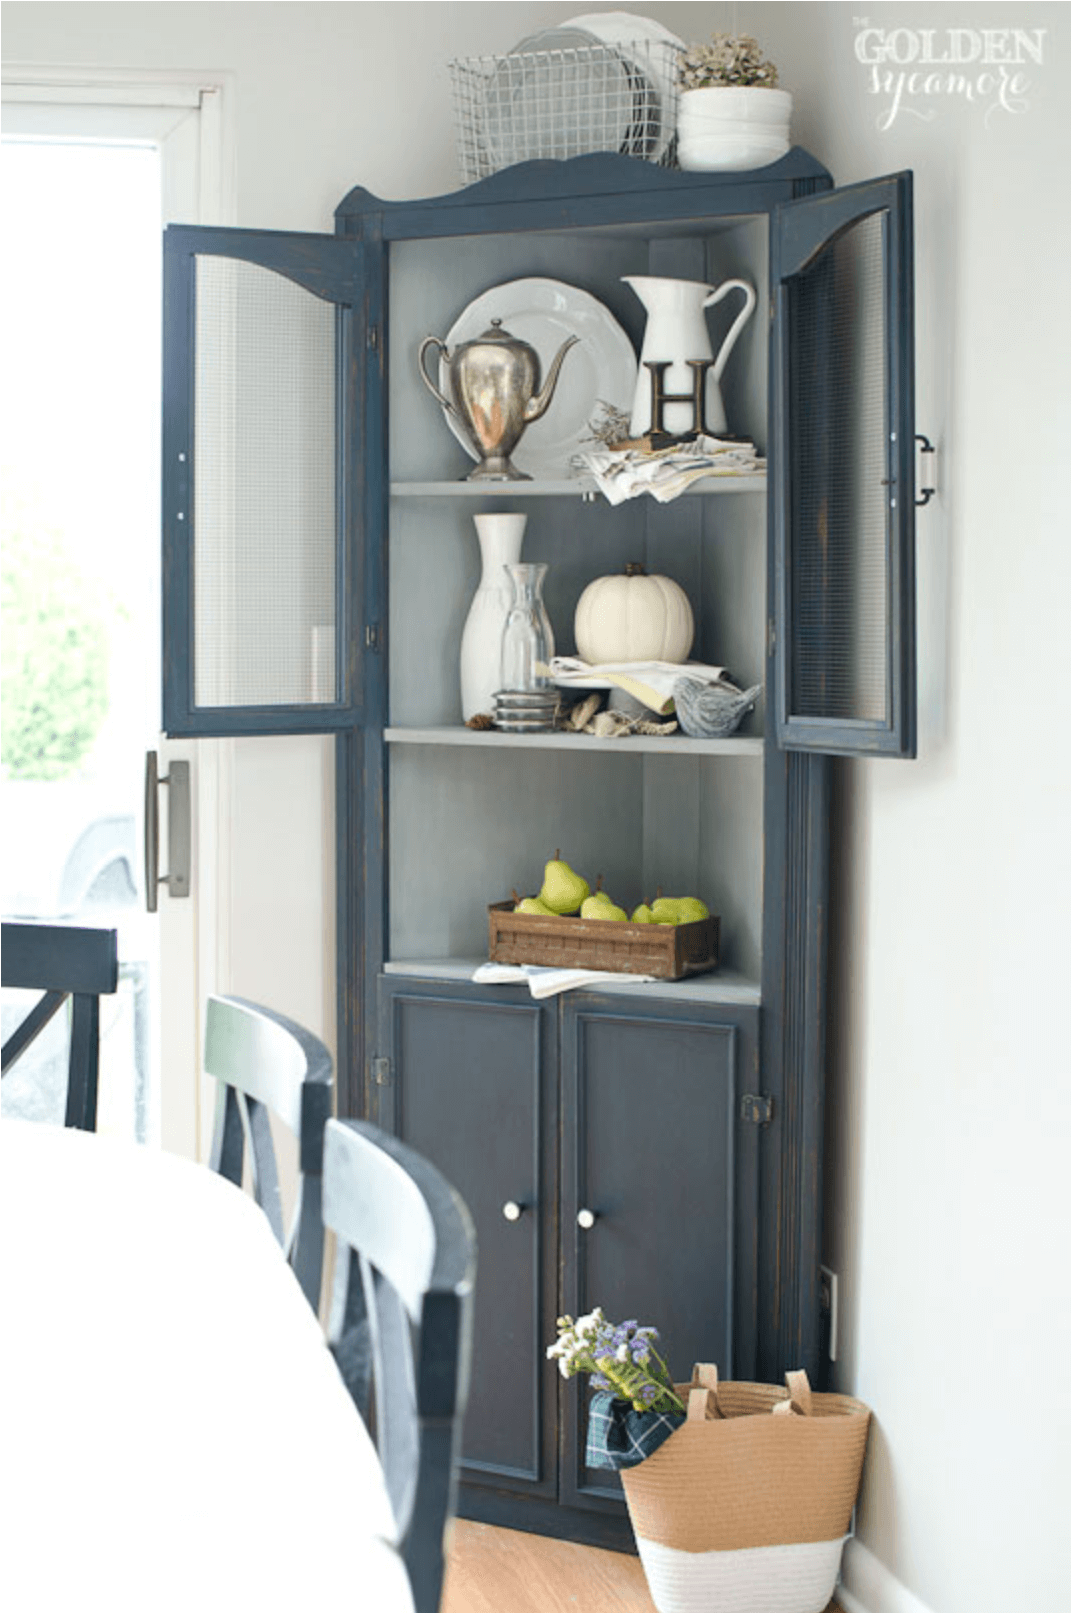 Anne White Interiors Blog | corner cabinets yea or nay